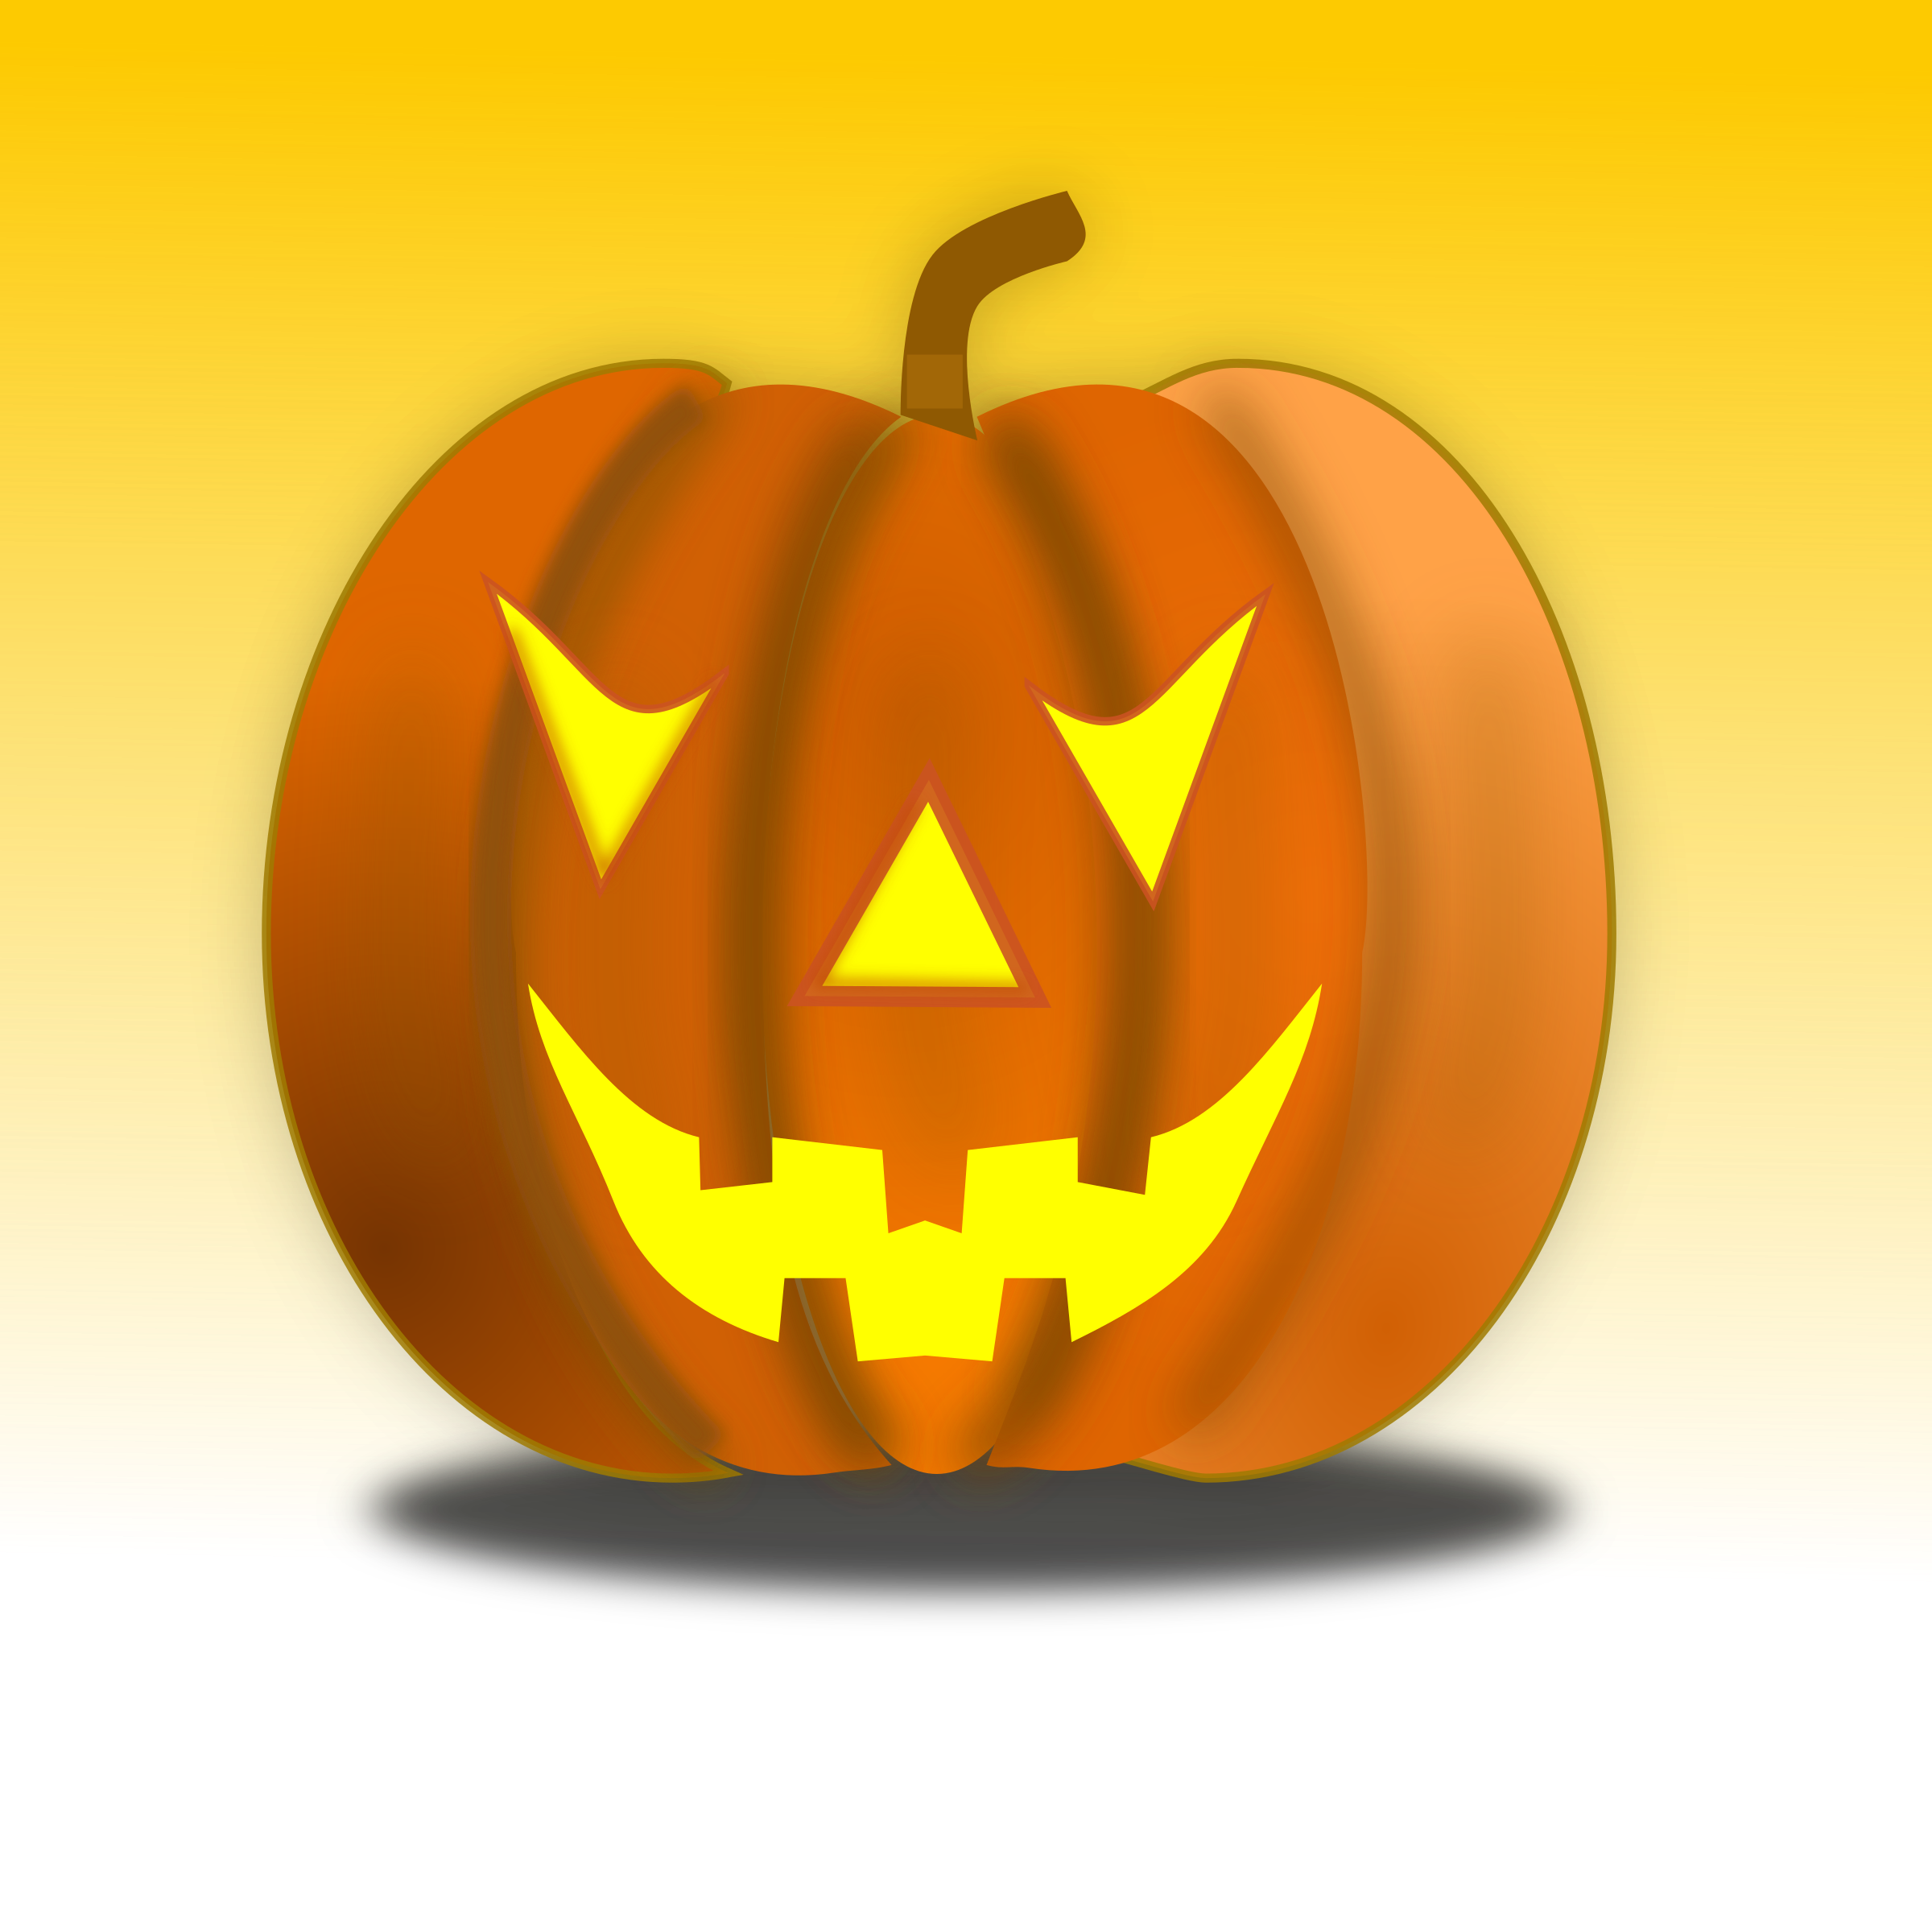 Pumpkin with cut for face clipart picture free download Halloween Pumpkin Icon 64x64 Icons PNG - Free PNG and Icons Downloads picture free download